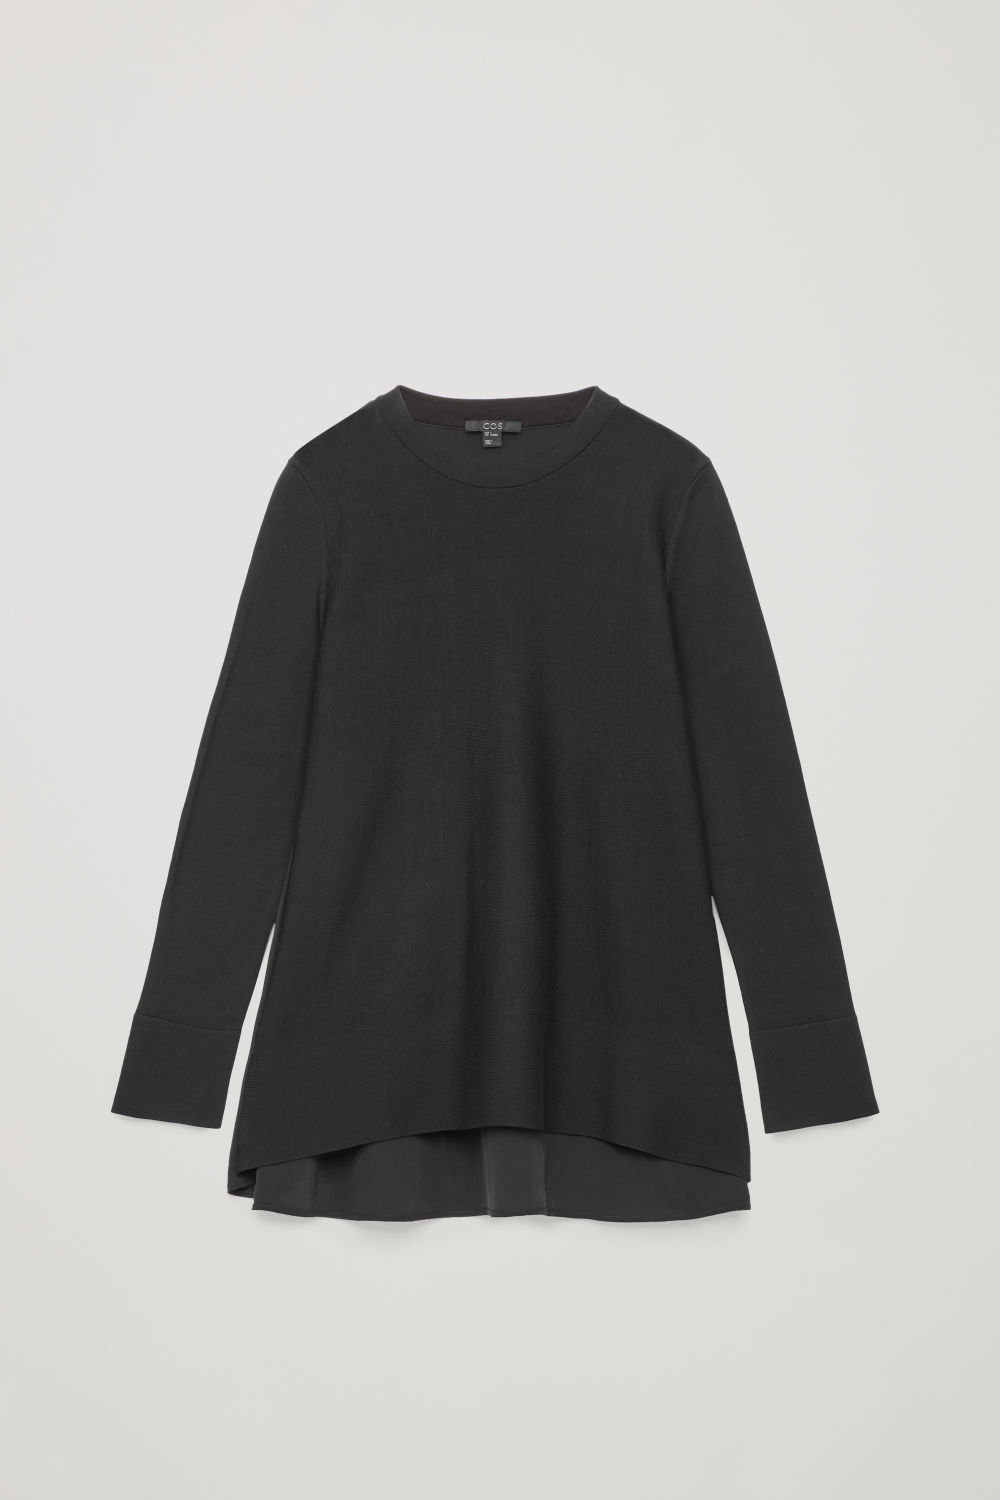 KNIT TOP WITH SILK PANEL